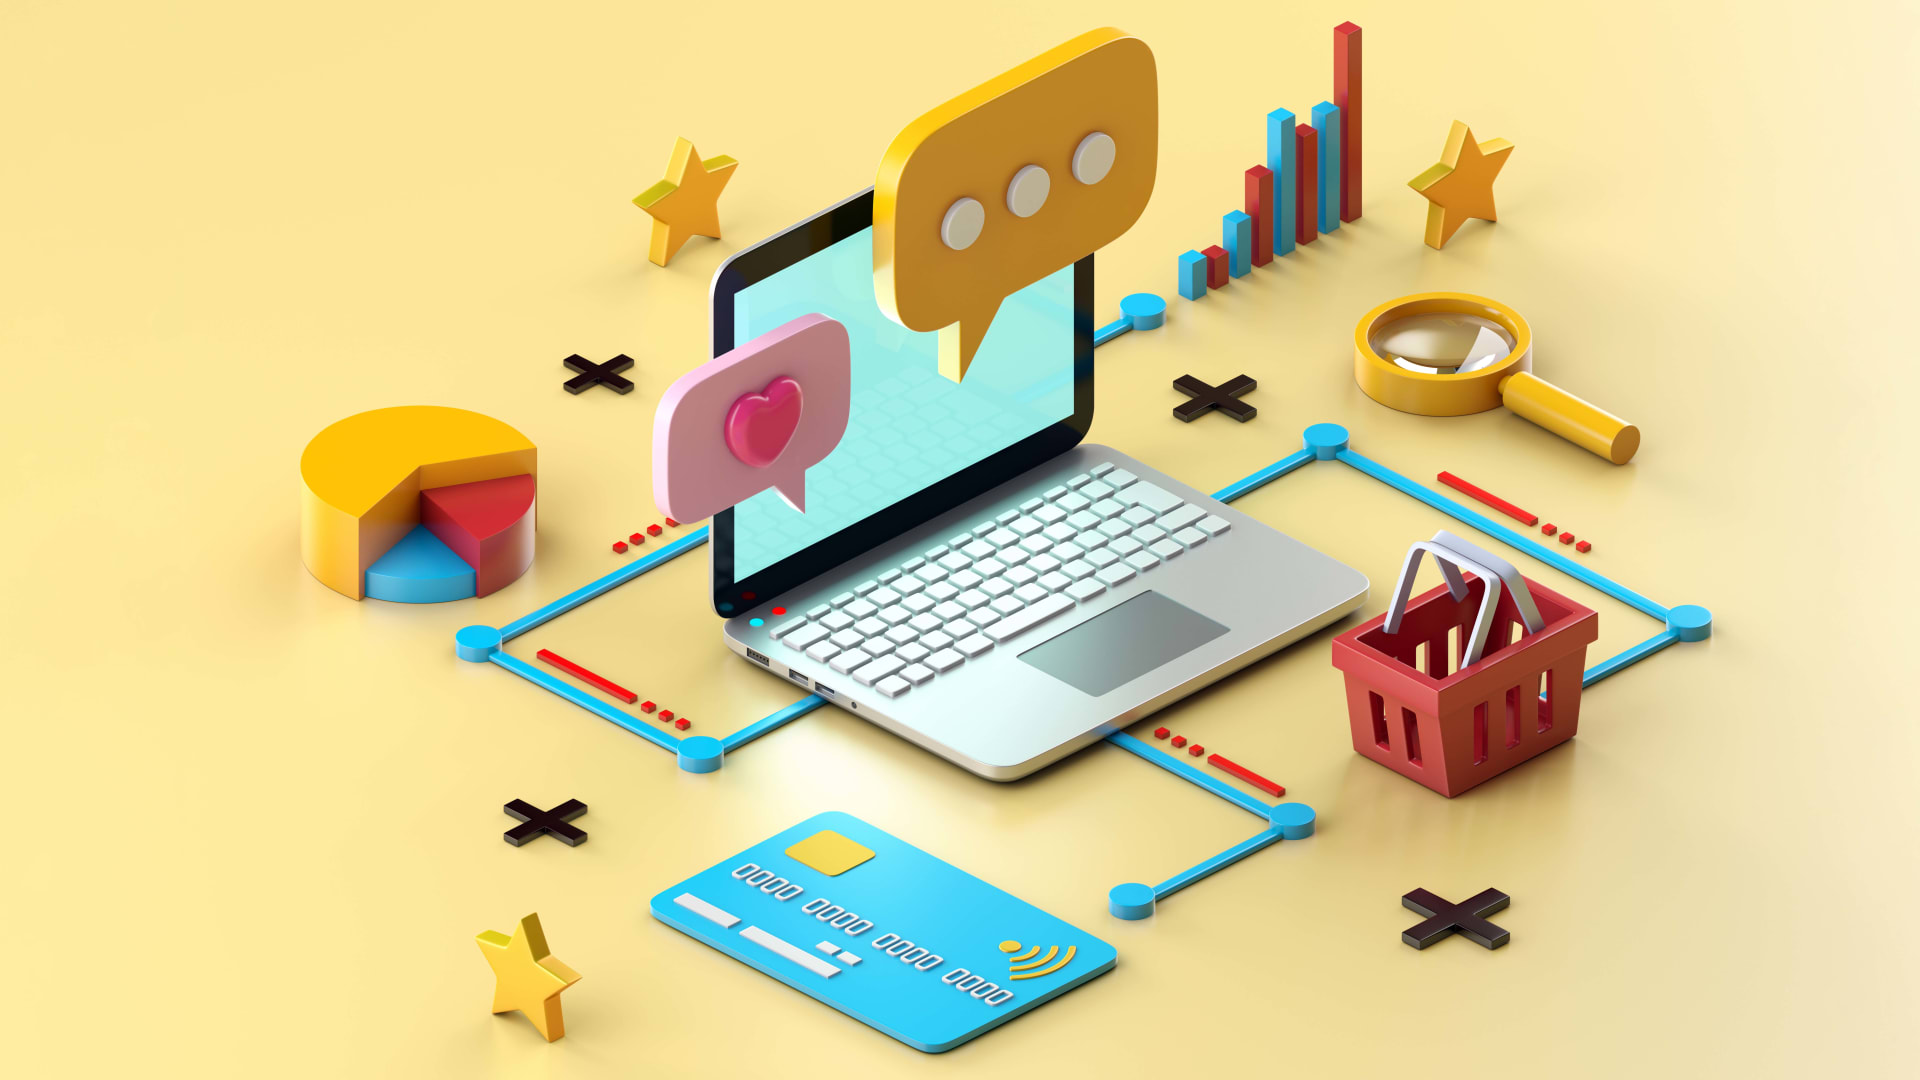 4 Trends That Will Shape the Next Few Years of E-Commerce